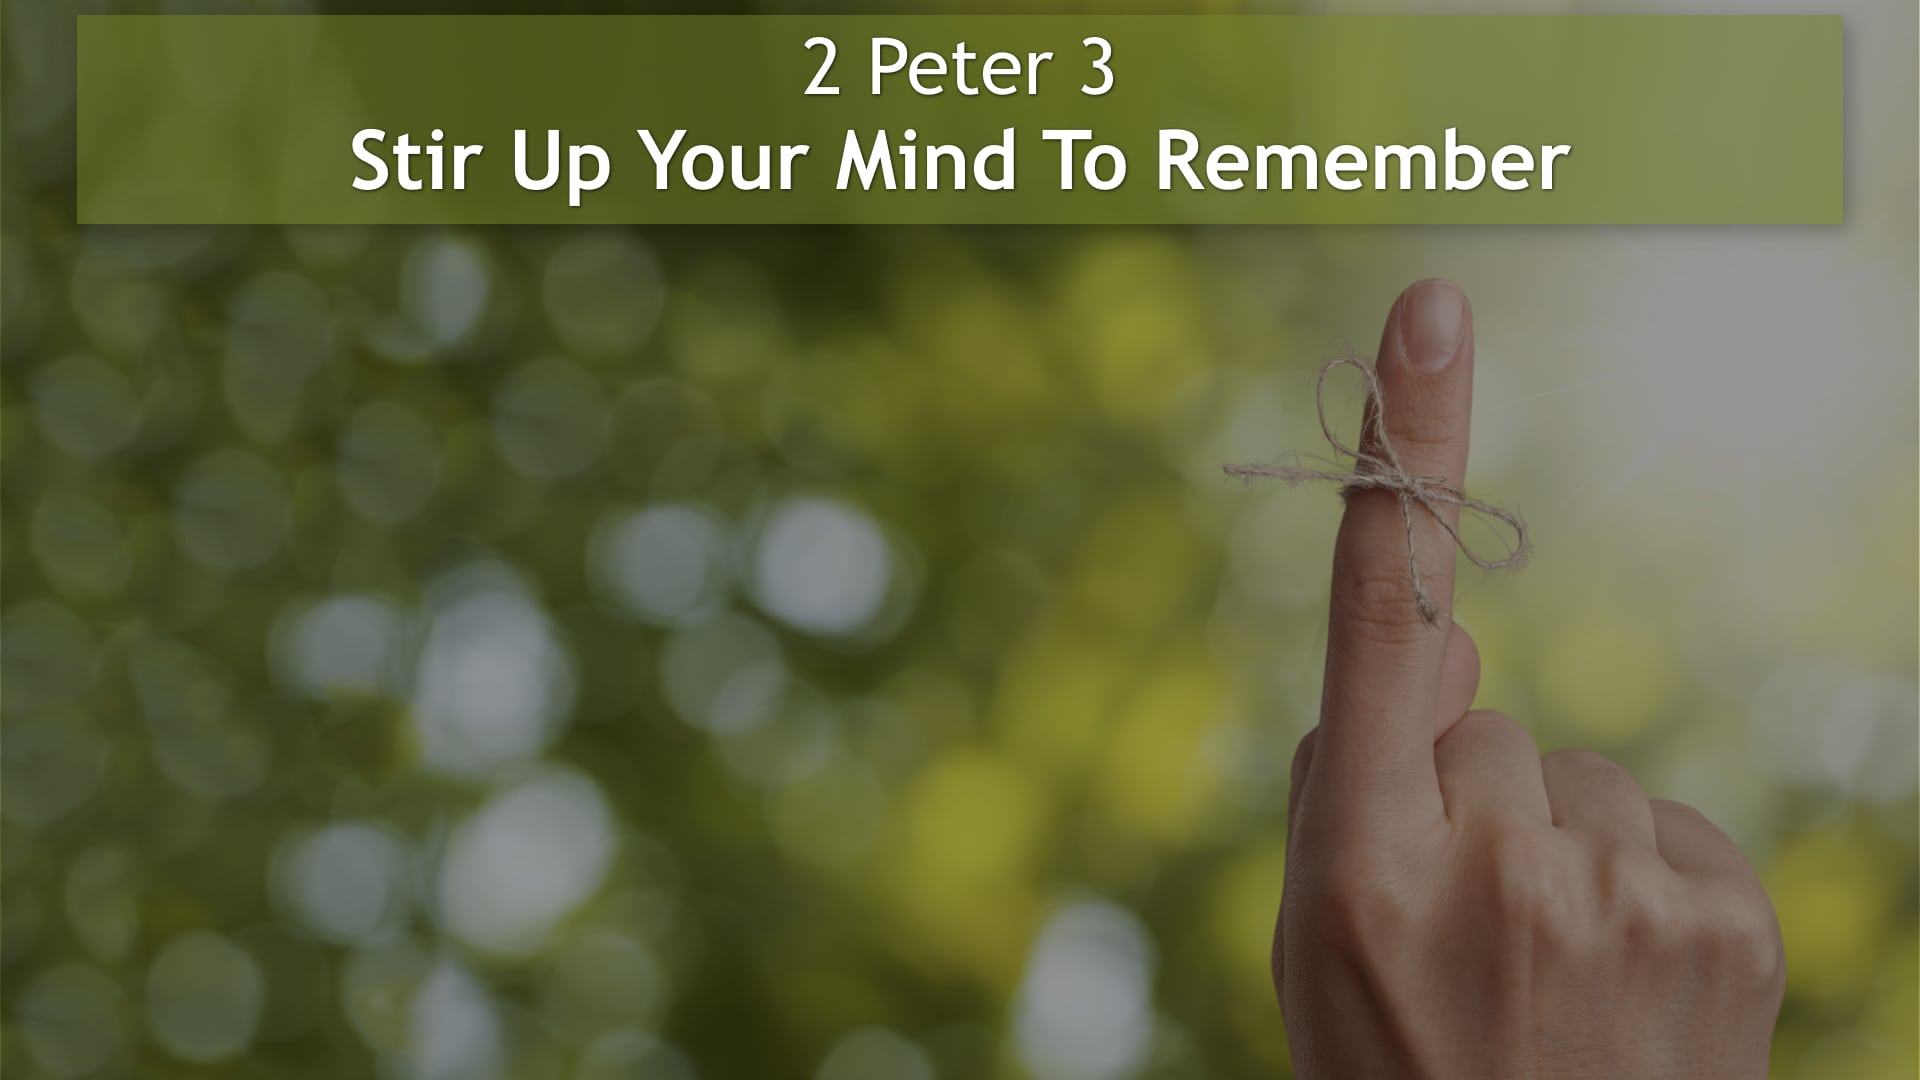 2 Peter 3, Stir Up Your Mind To Remember